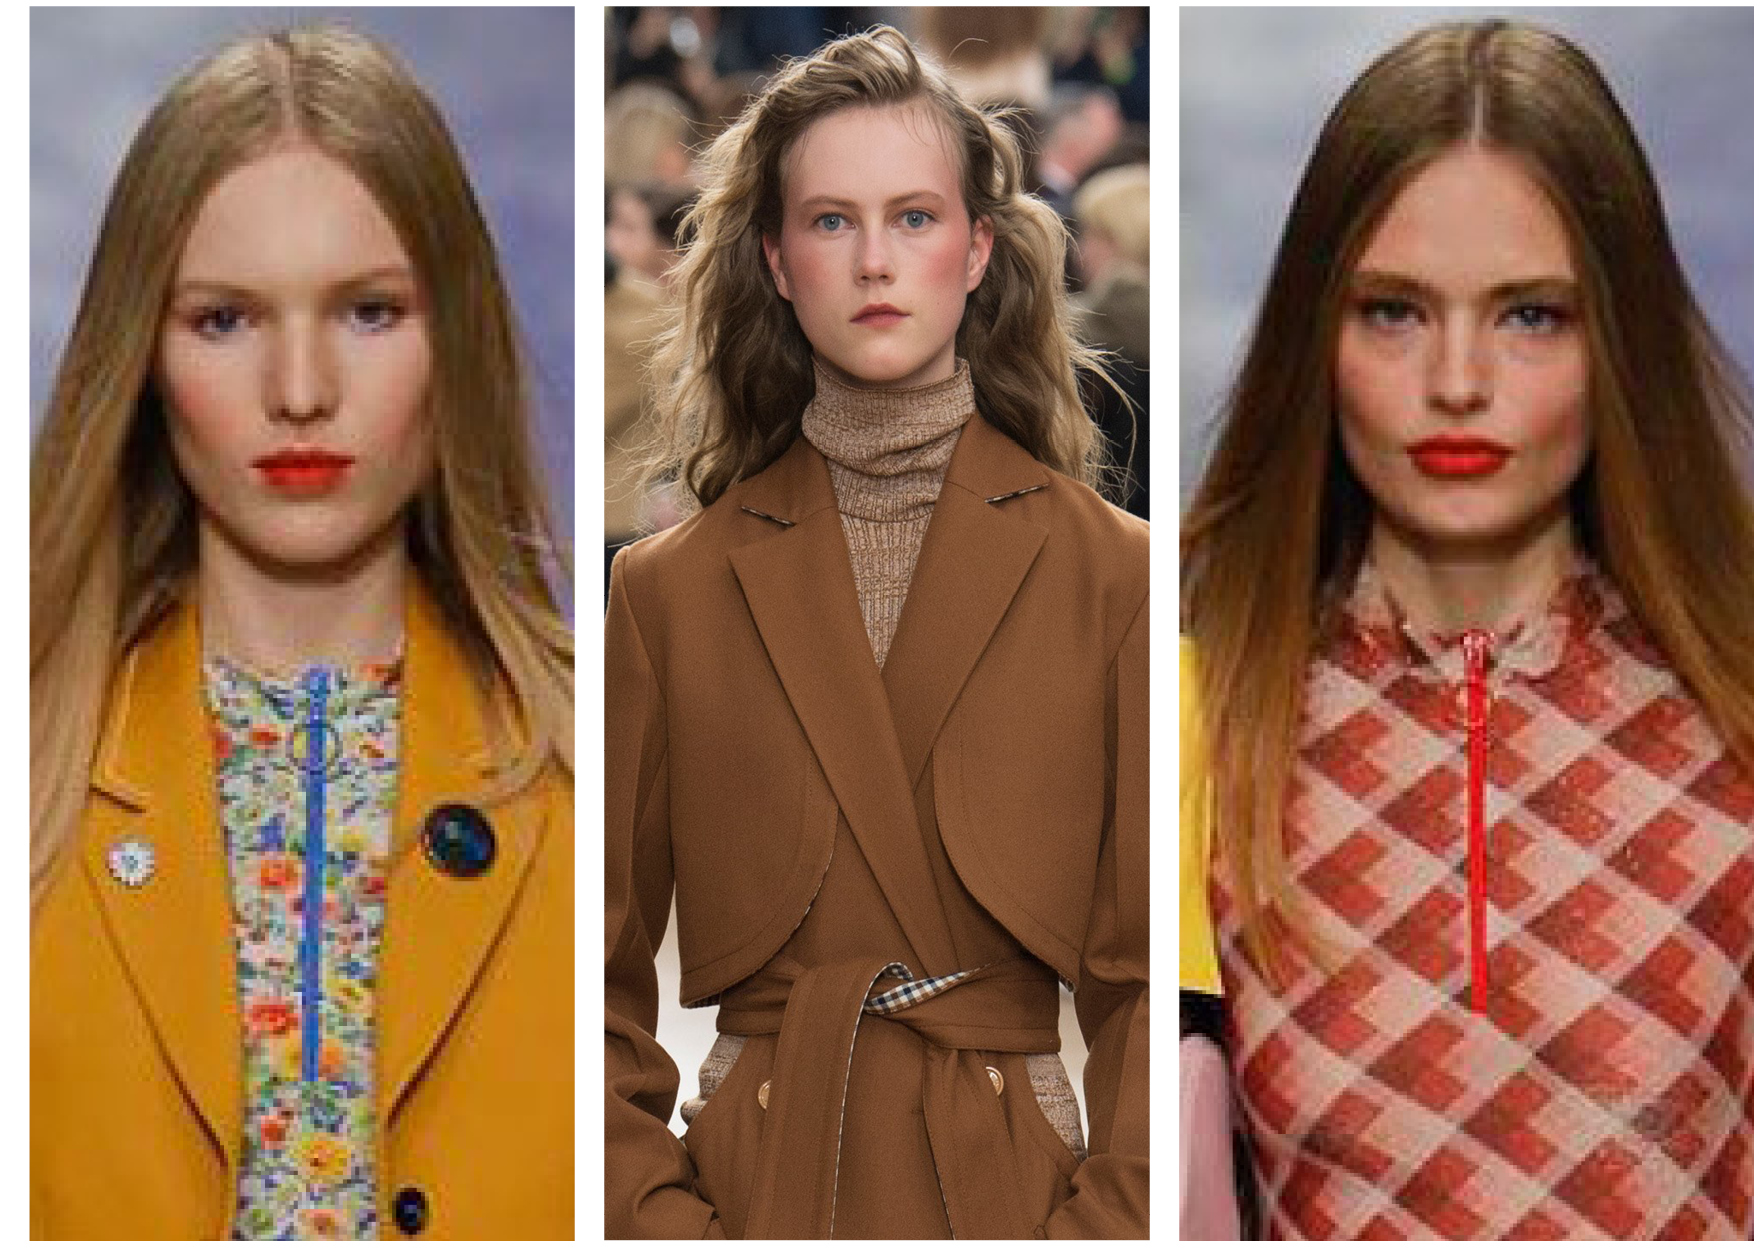 80s Hair and makeup: Our London Fashion Week highlights